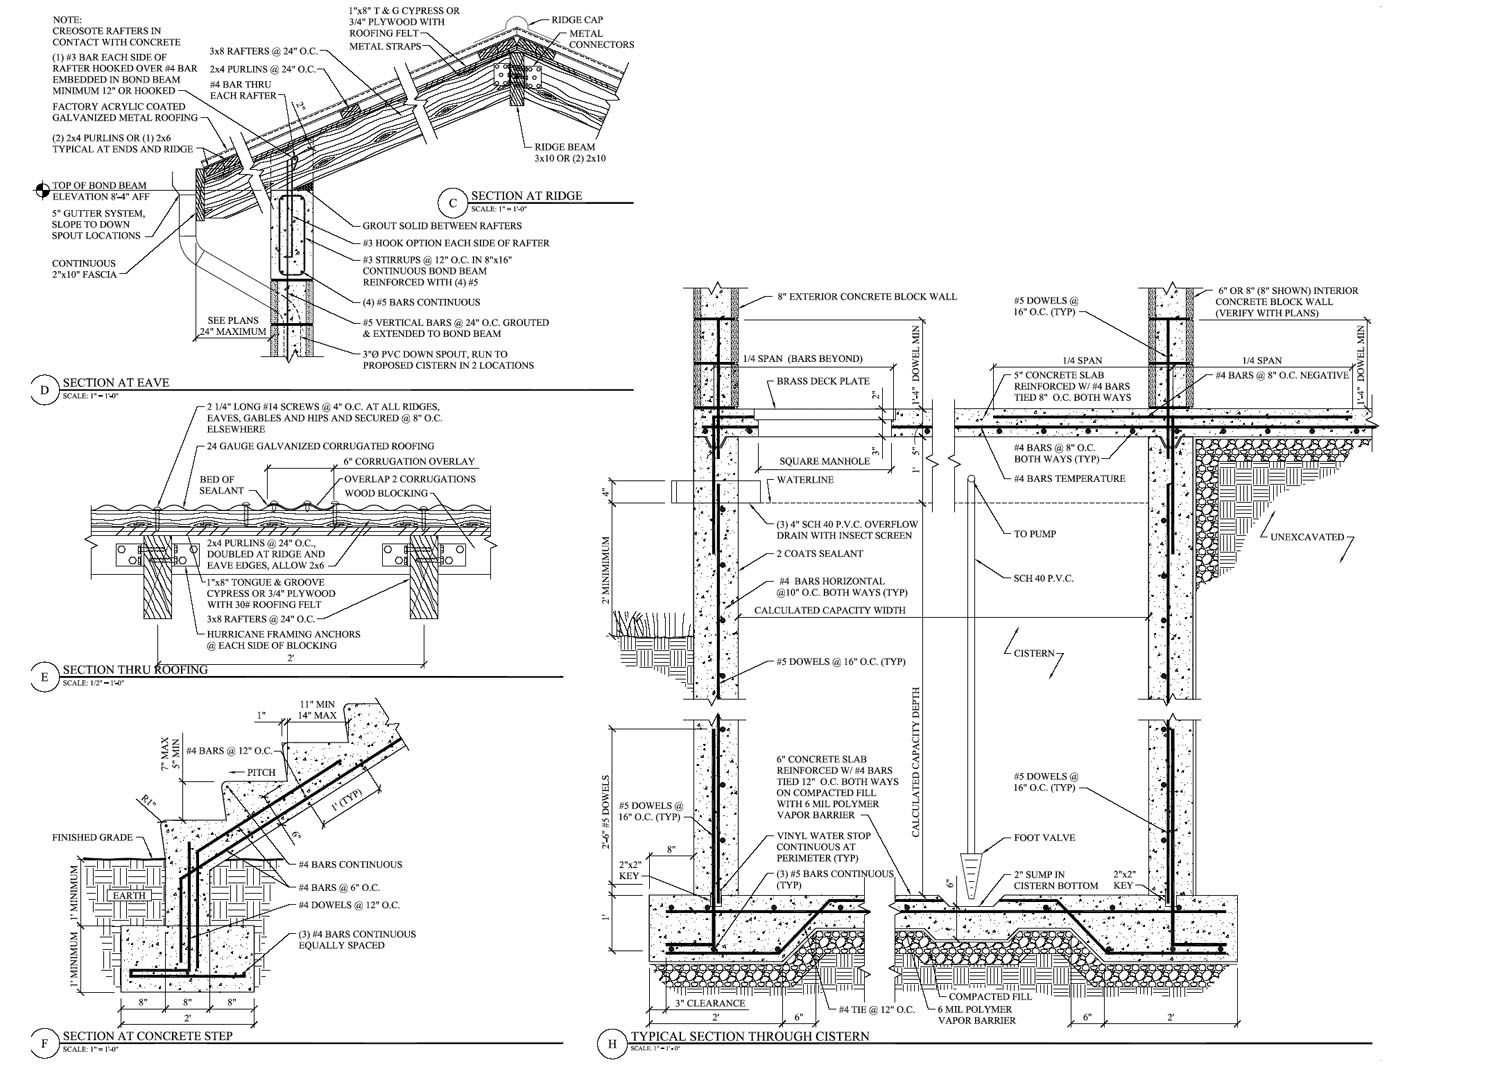 Section Drawings Including Details Examples Wall Section